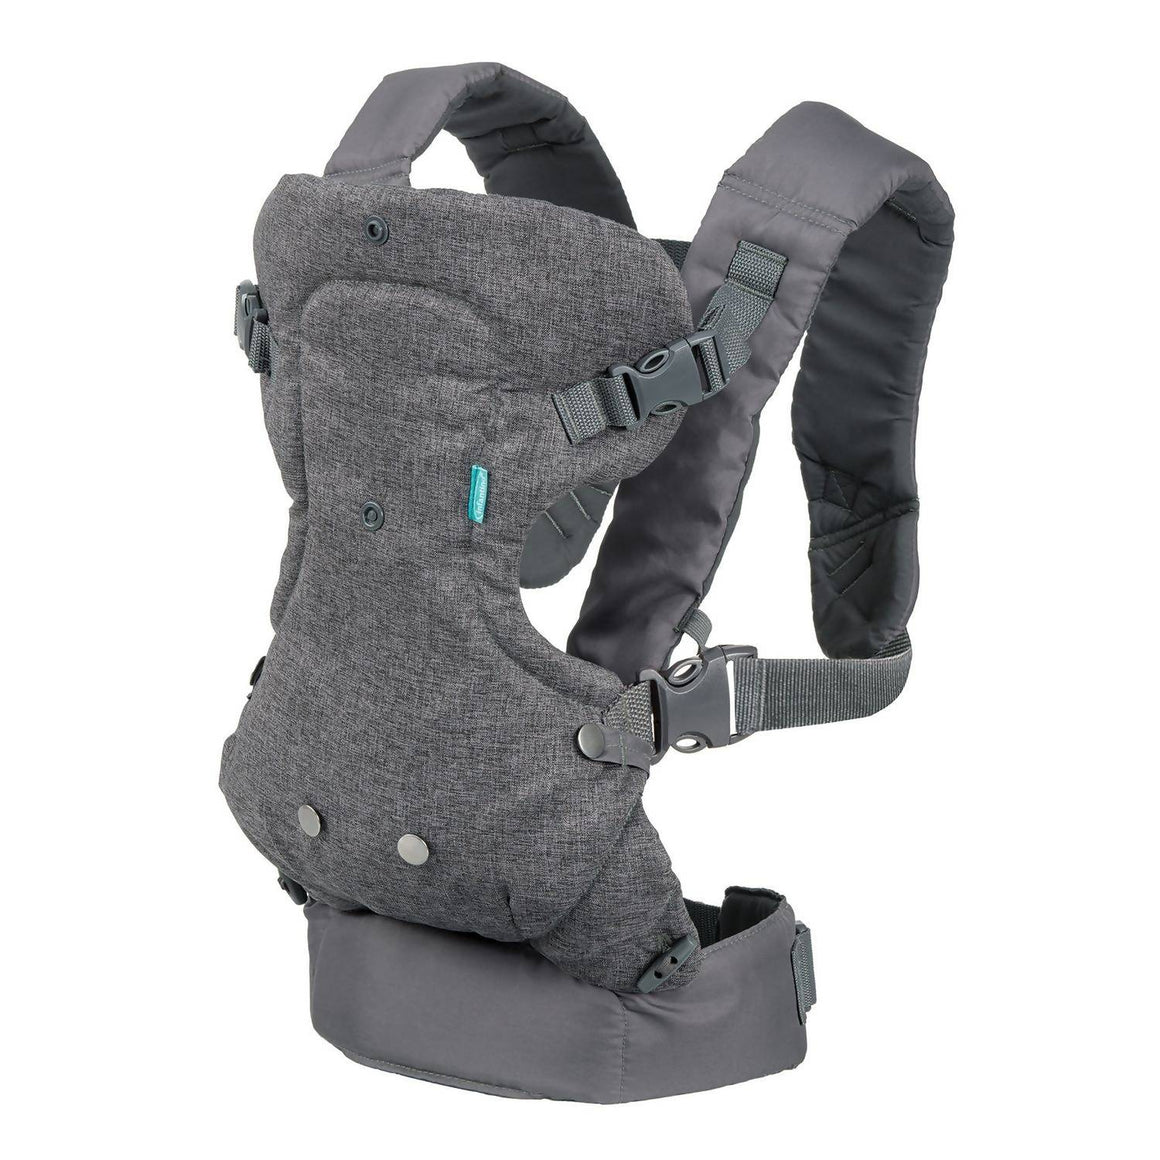 Infantino Flip Advanced 4-in-1 Convertible Baby Carrier - Cuddlecircle